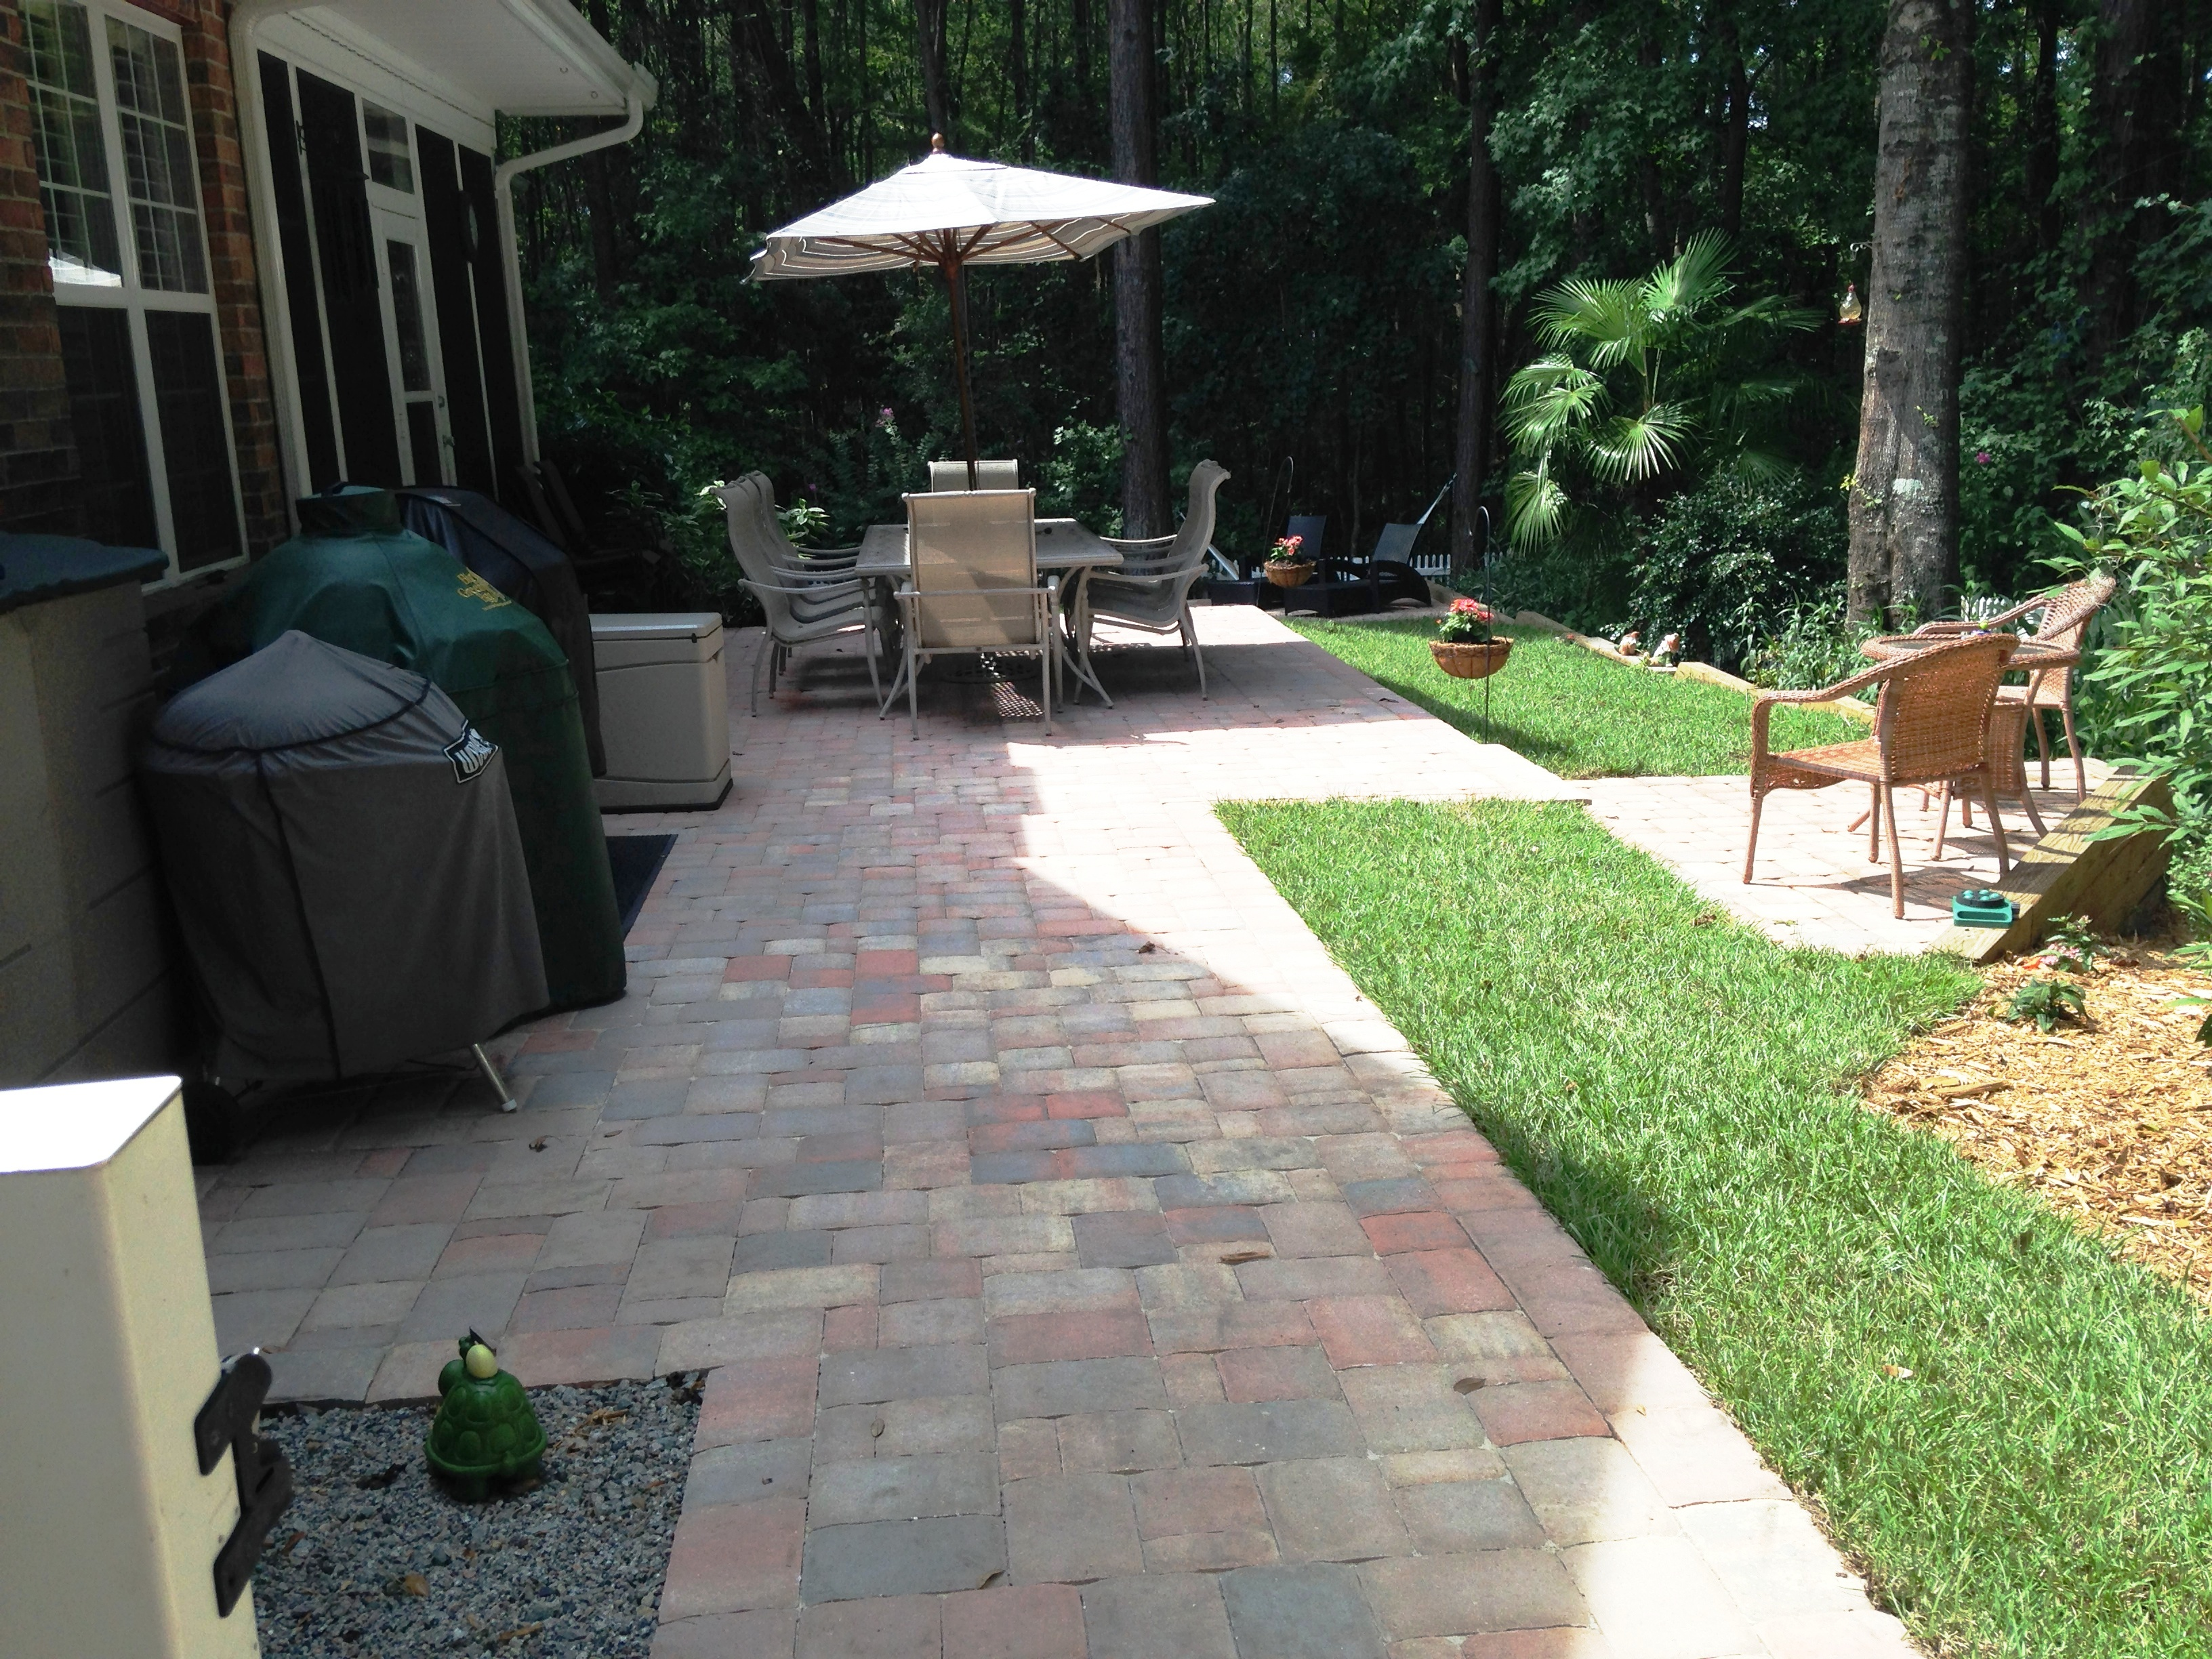 Belgard Paver Tile Overlay Expands Existing Concrete Patio In Murrells  Inlet, SC For Plenty Of Outdoor Entertaining